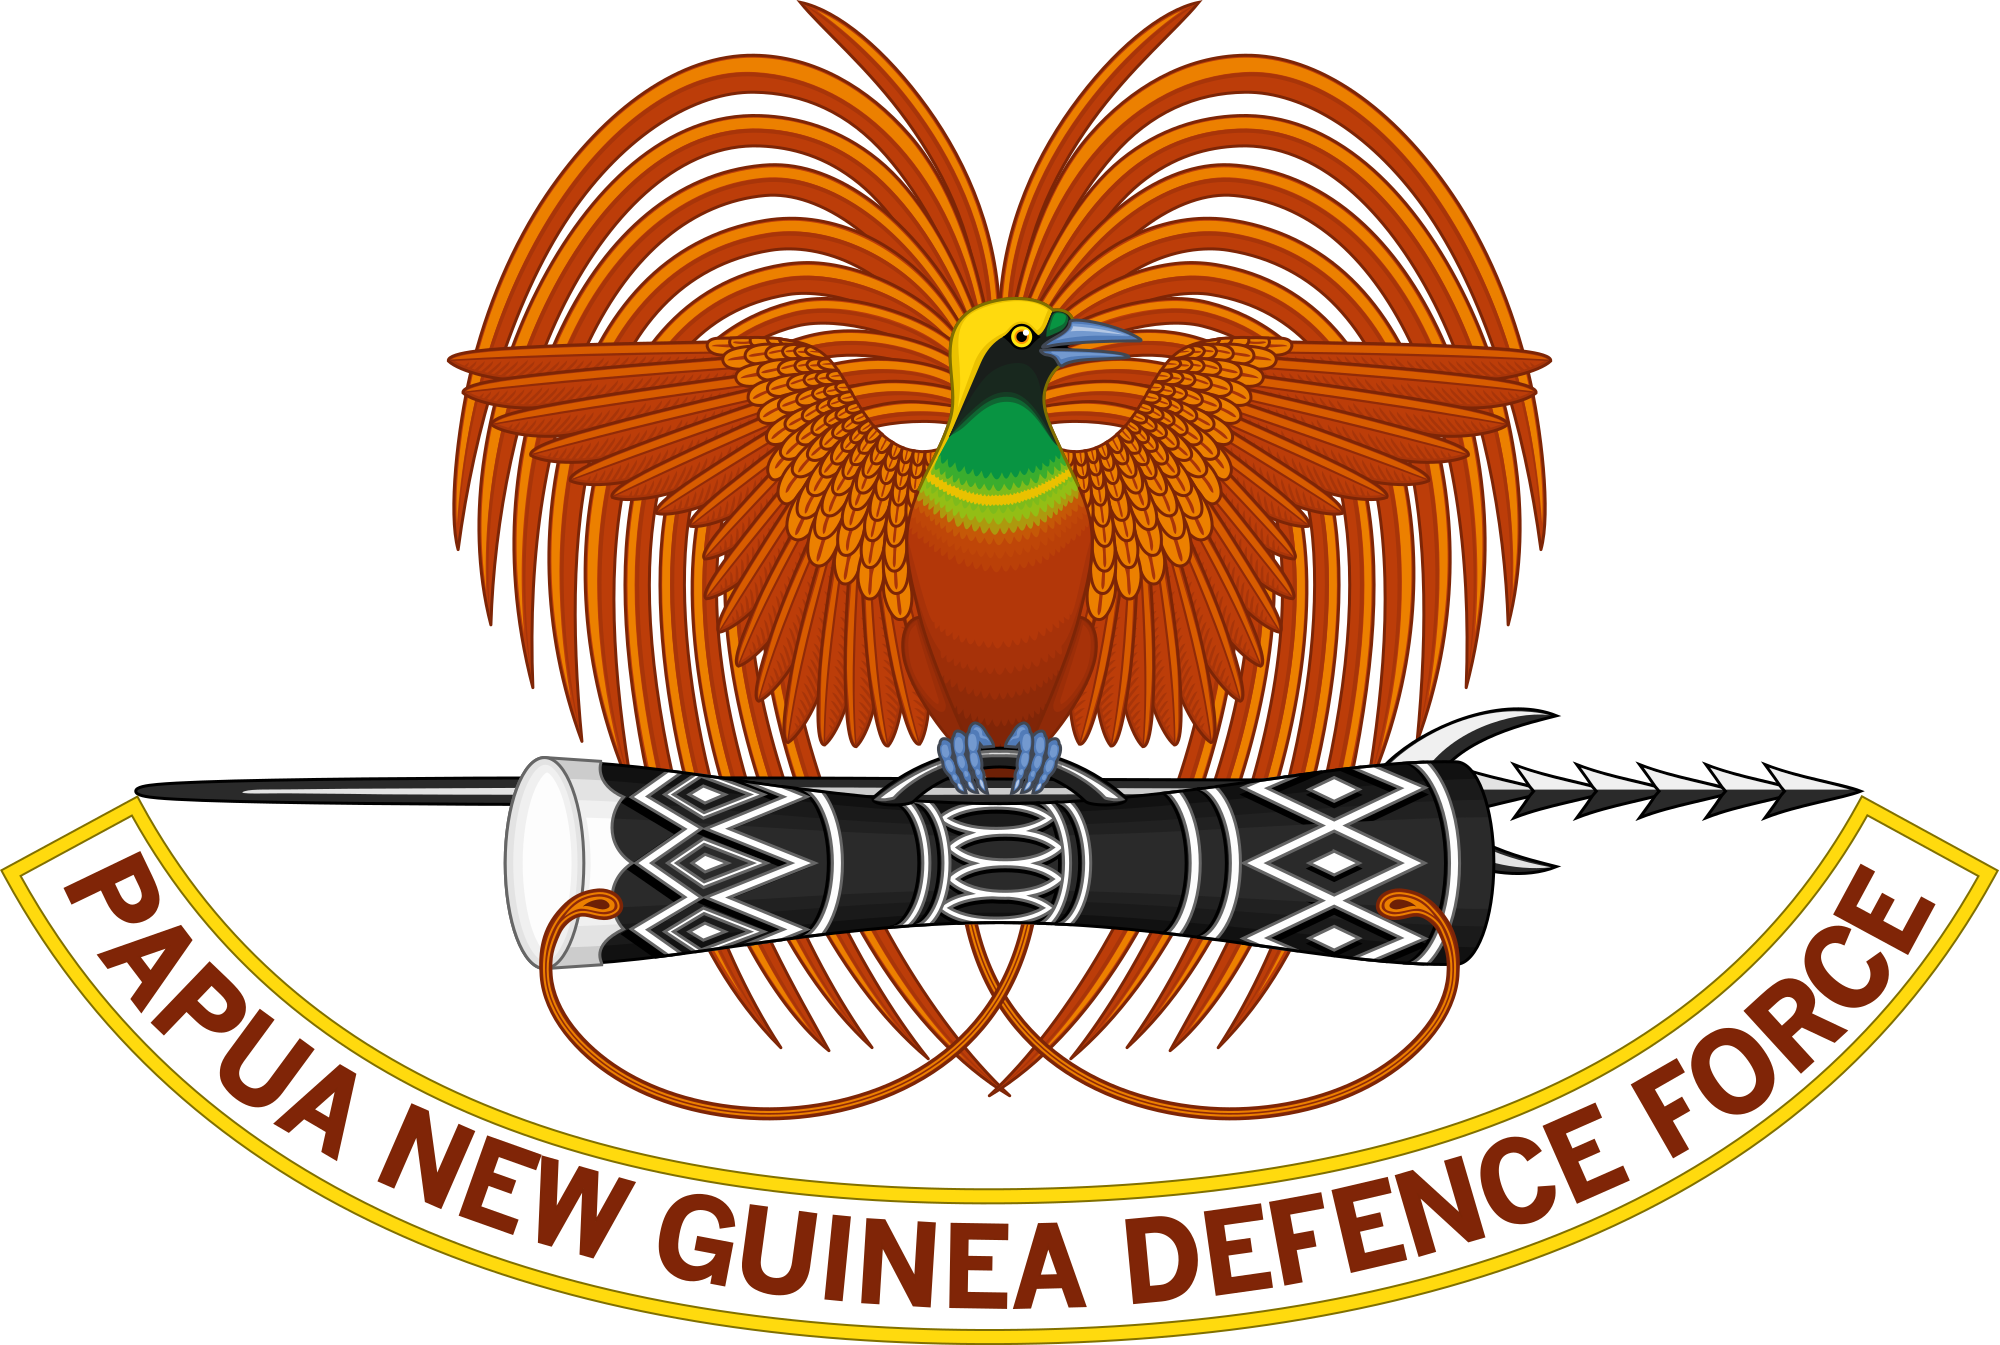 Clipart loop news madang image black and white stock Papua New Guinea Defence Force - Wikipedia image black and white stock